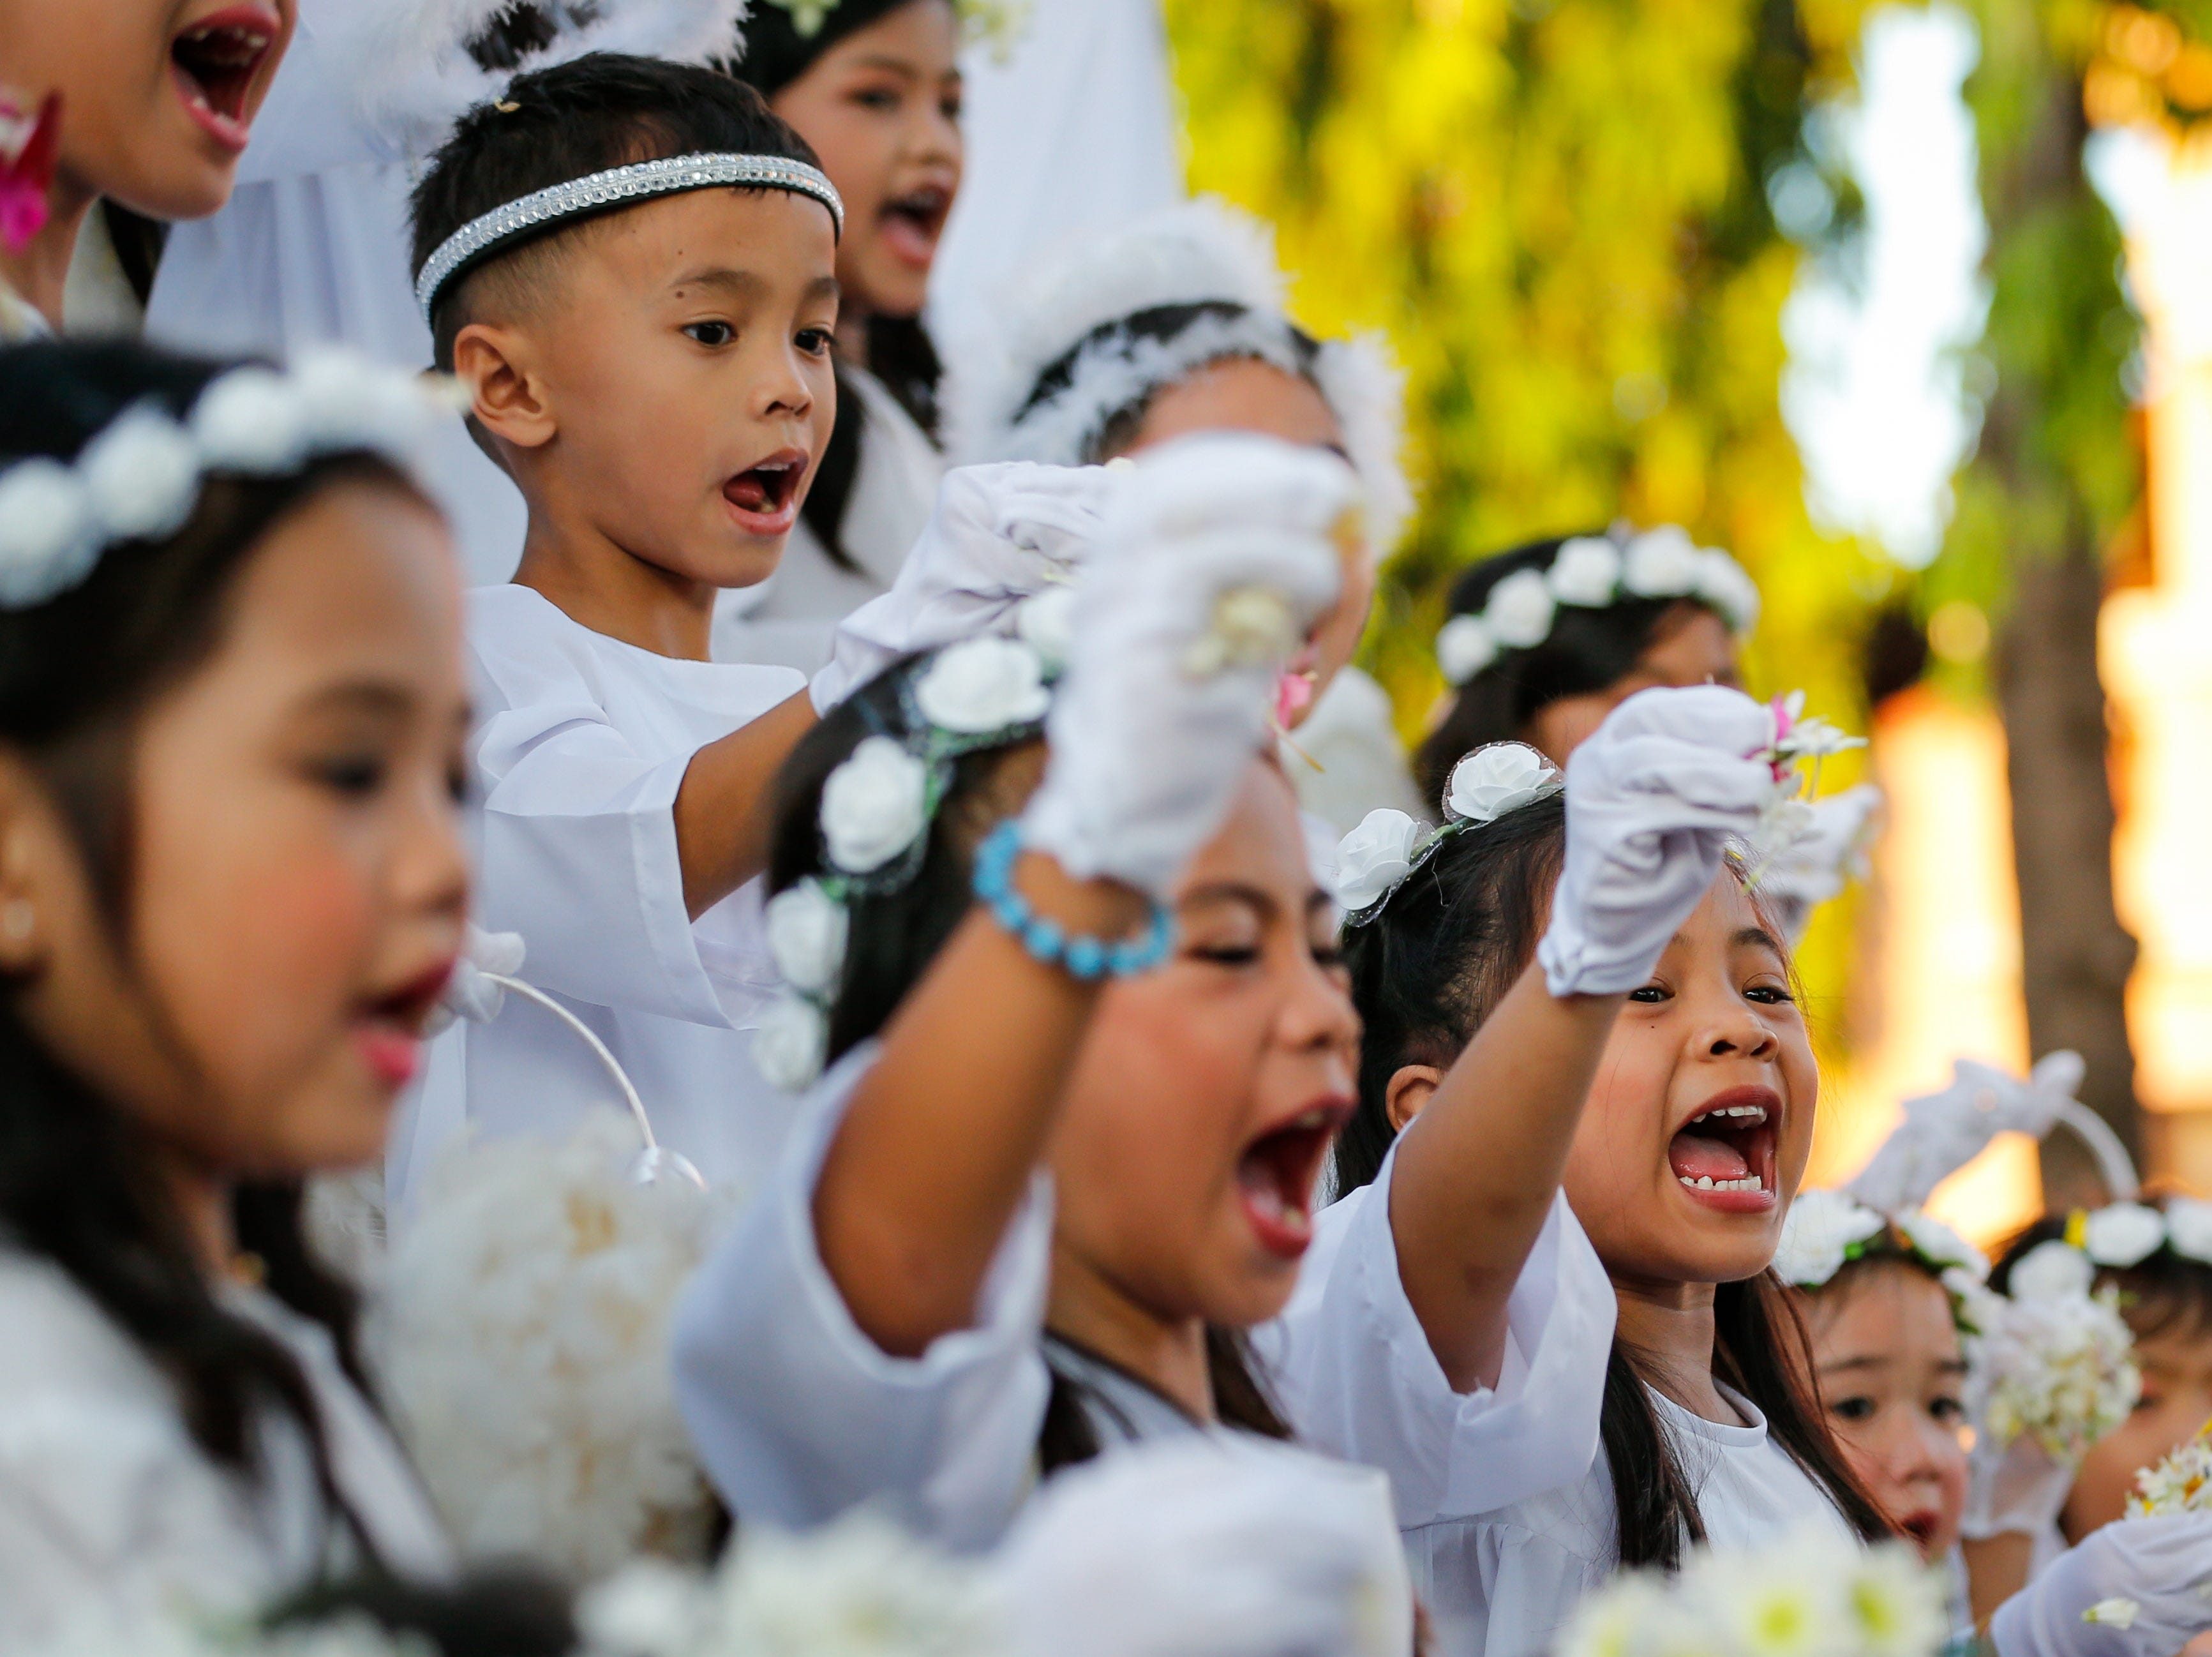 Children dressed as angels perform during the Easter Sunday celebration called Salubong in Santo Tomas, Pampanga, Philippines on April 21, 2019. The Salubong is a re-enactment of the meeting of the Virgin Mary and the risen Jesus Christ.